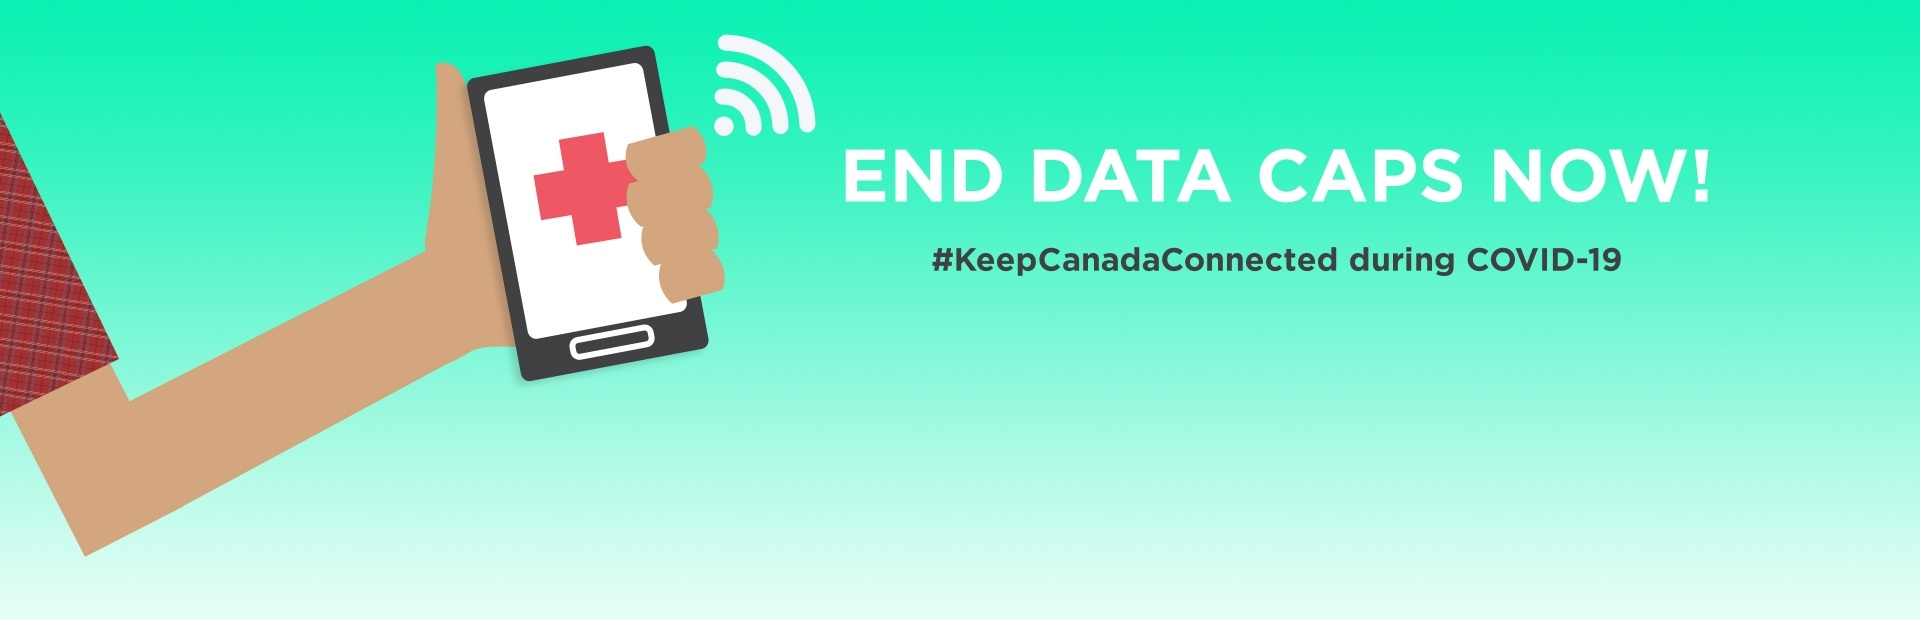 Let's end data caps and #KeepCanadaConnected